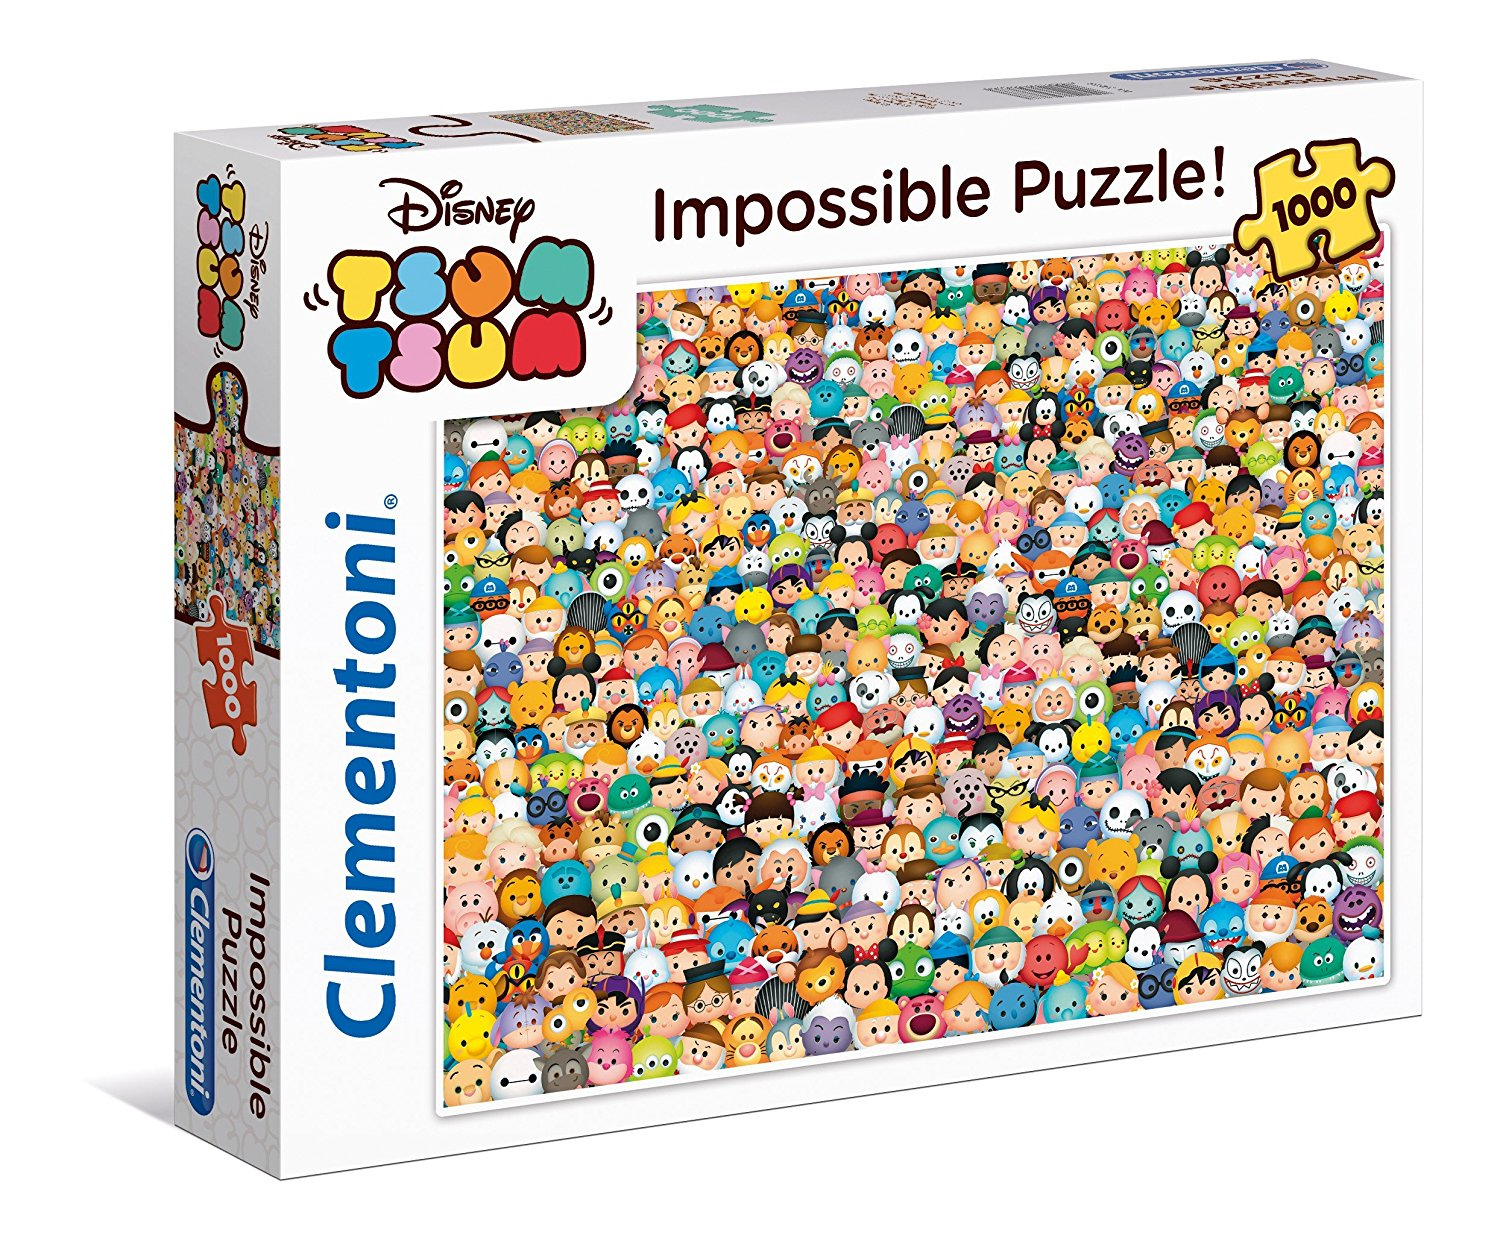 disney tsum tsum impossible puzzle 1000 teile clementoni puzzle online kaufen. Black Bedroom Furniture Sets. Home Design Ideas